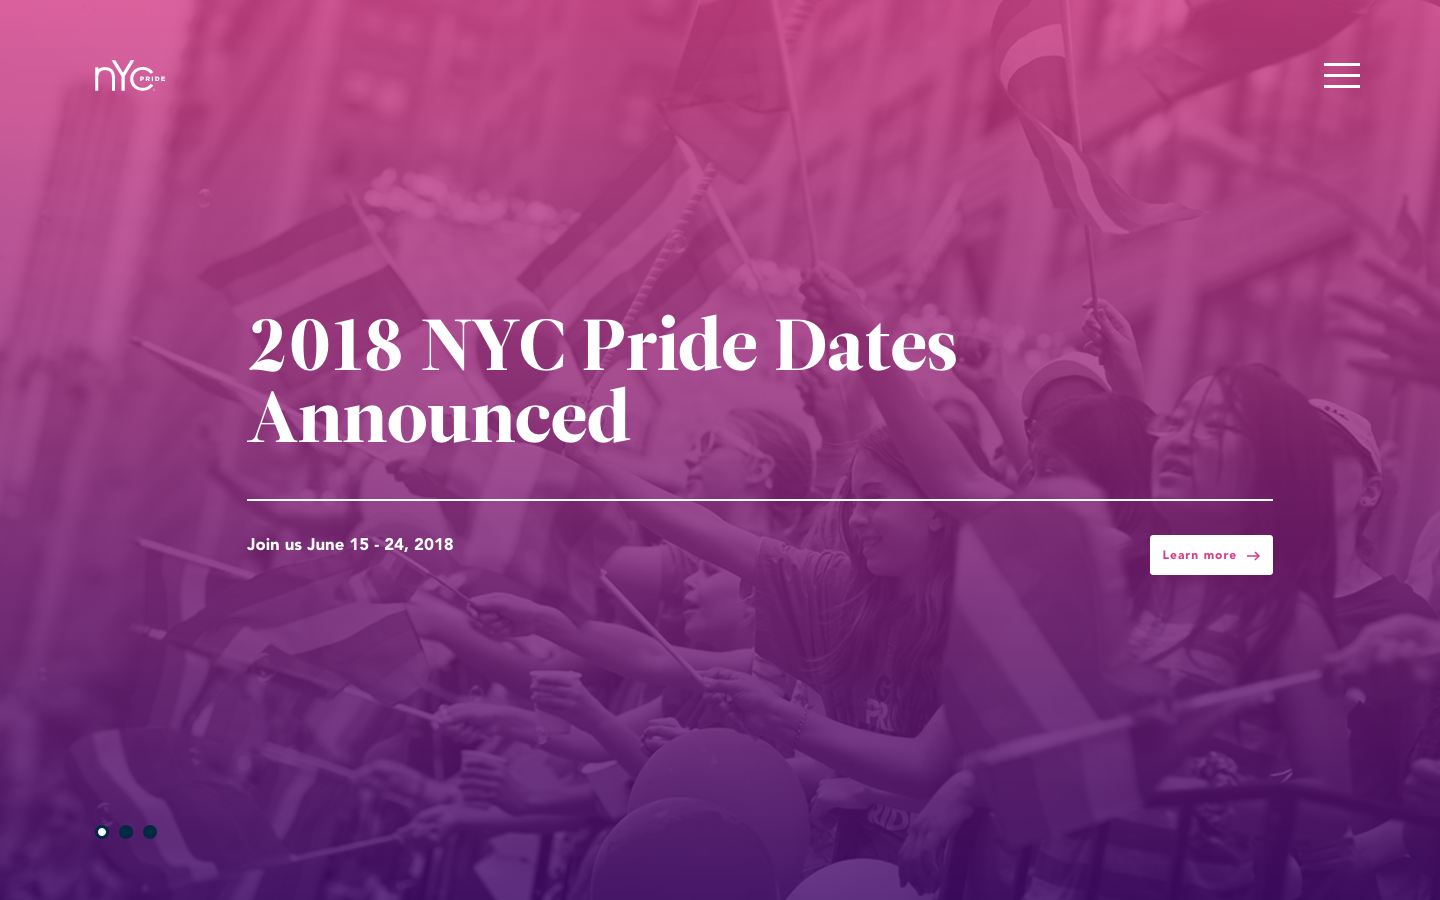 NYC Pride webpage screenshot